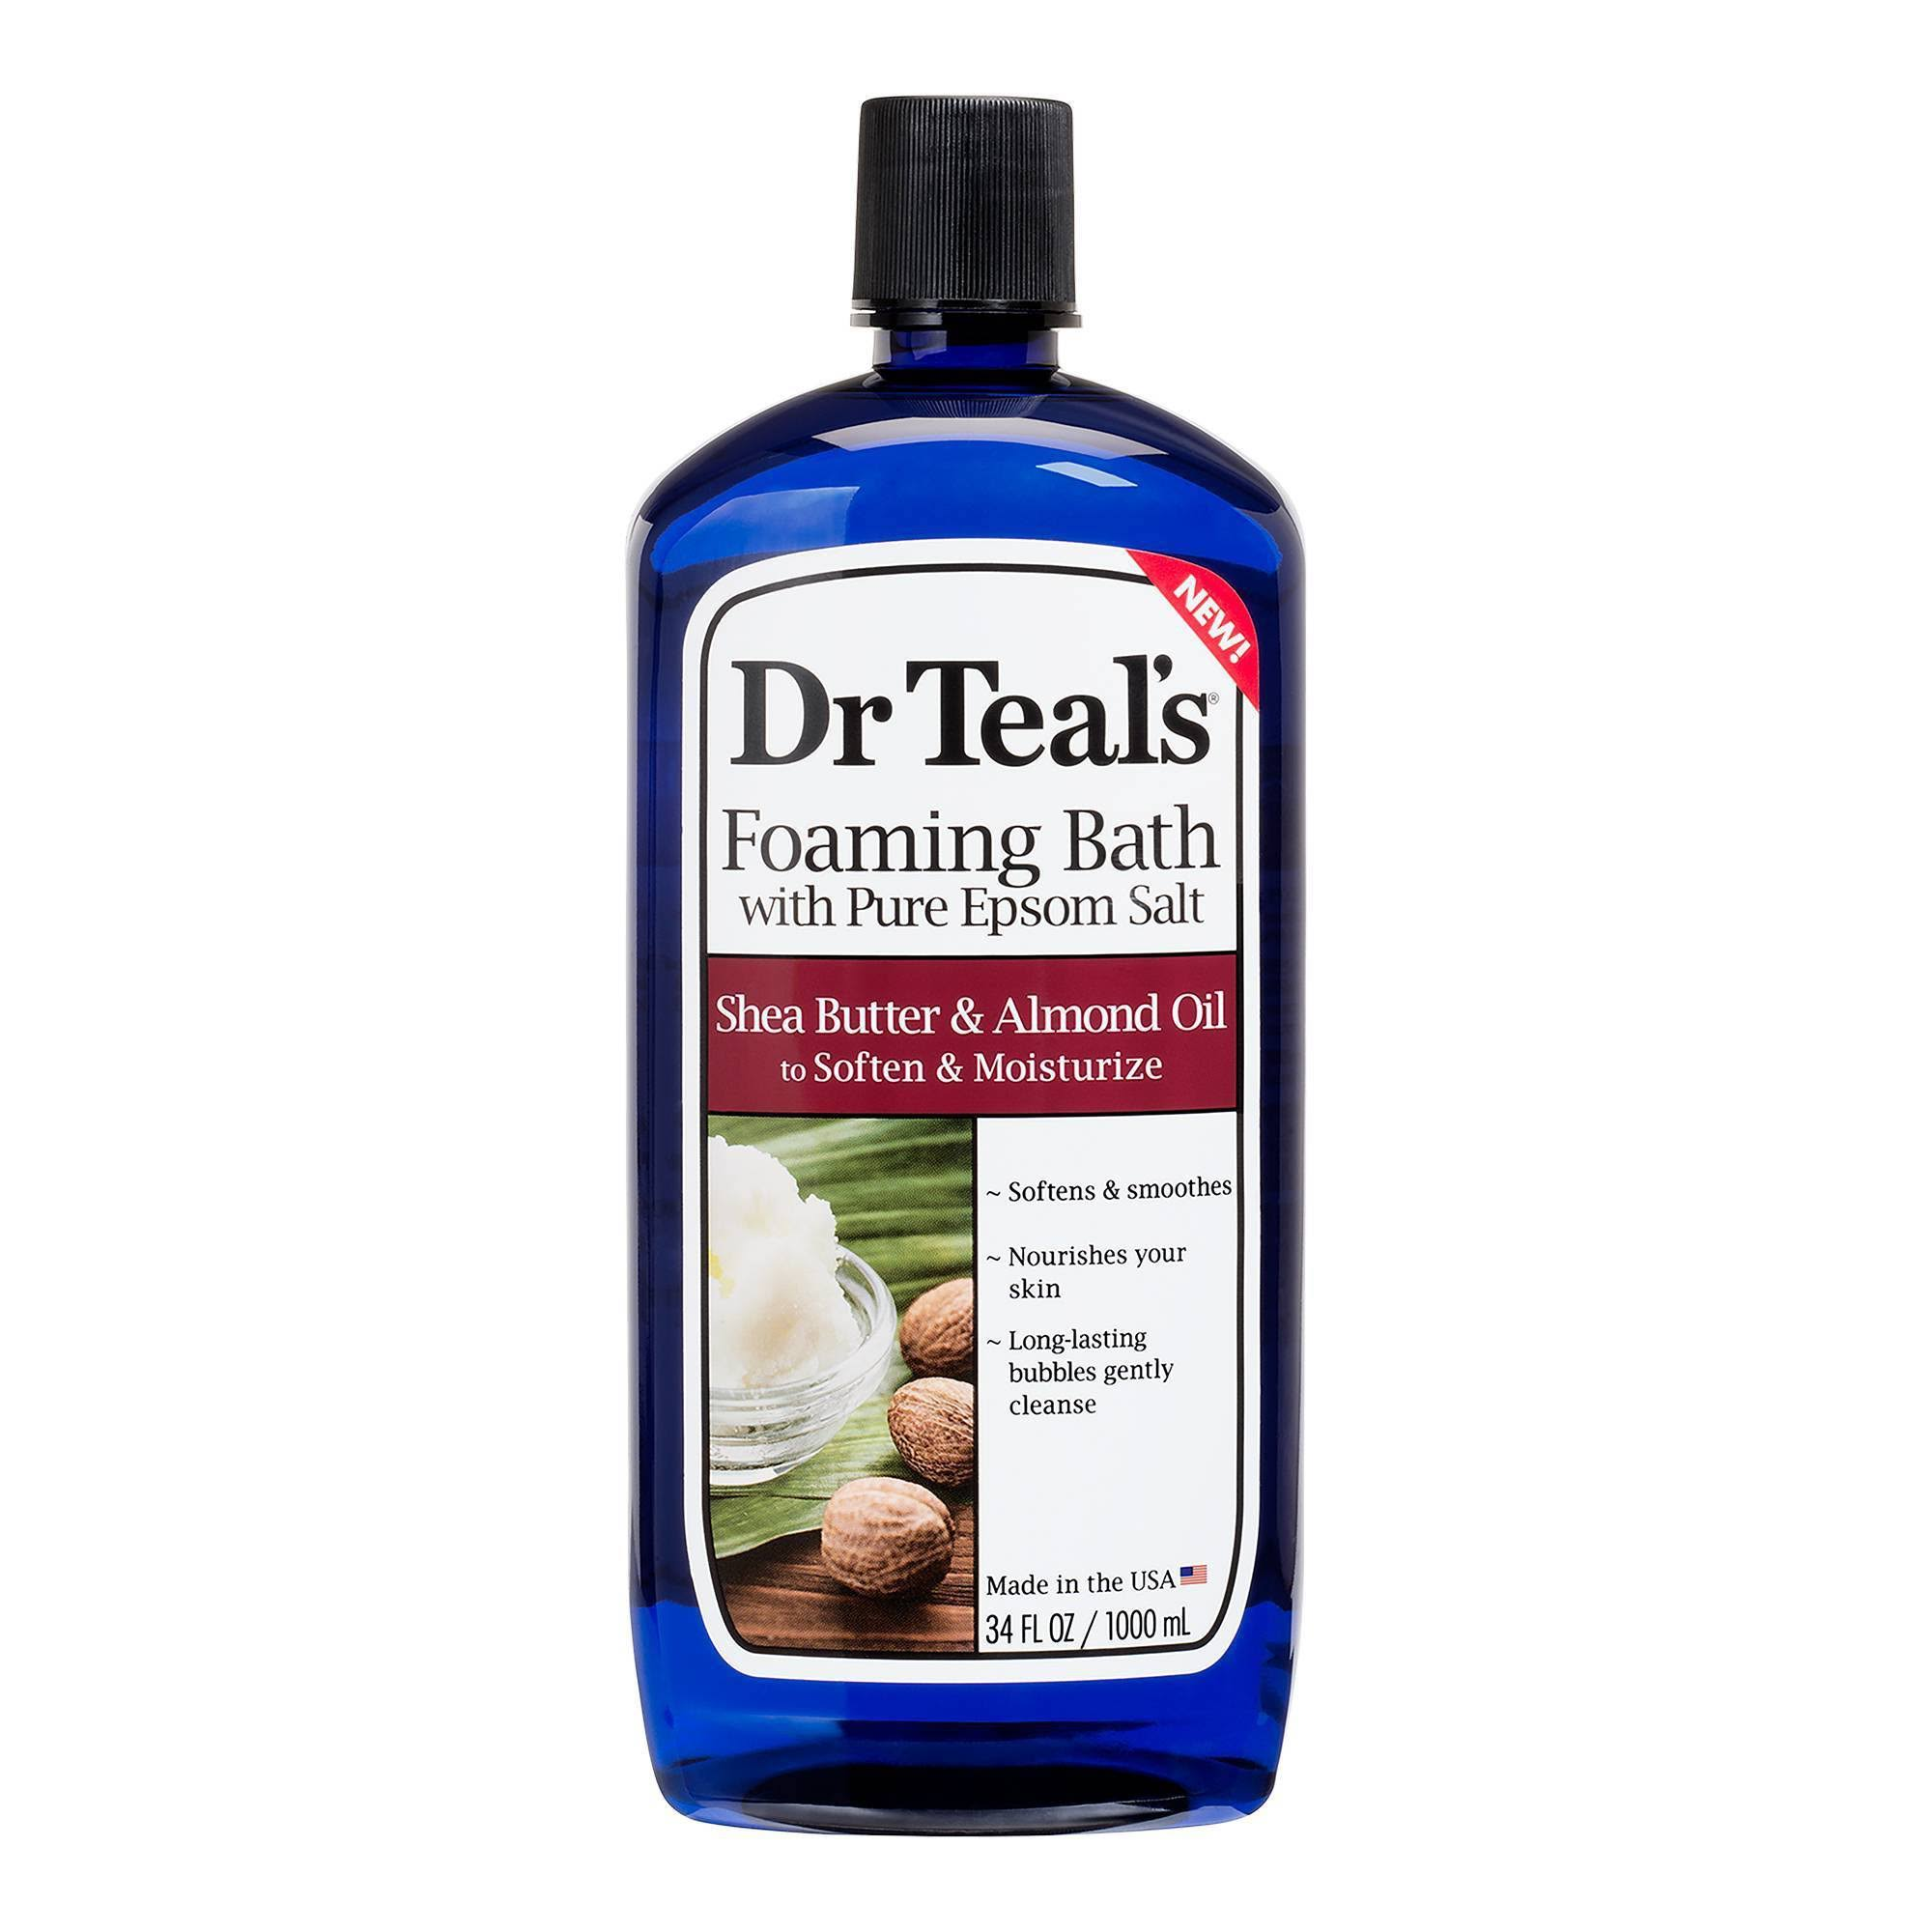 Dr Teal's Foaming Bath - With Pure Epsom Salt, Shea Butter & Almond Oil, 1000ml